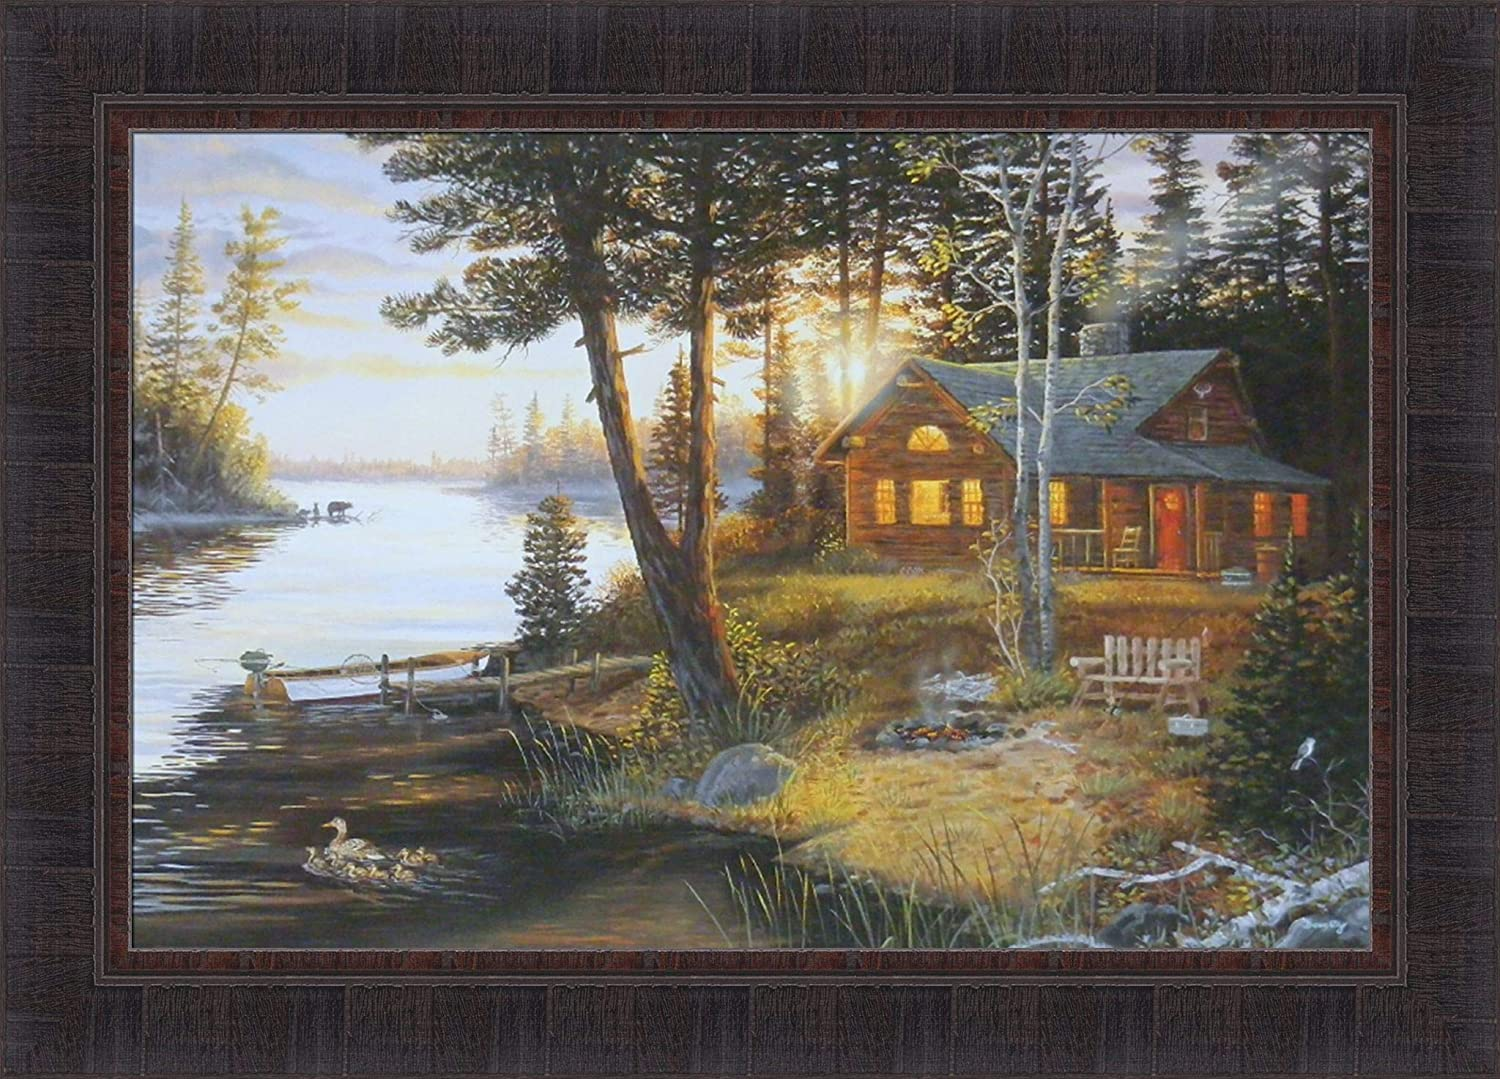 Deer in Natural Cabin on the Lake 5 Pieces Canvas Art Print Picture Wall Decor